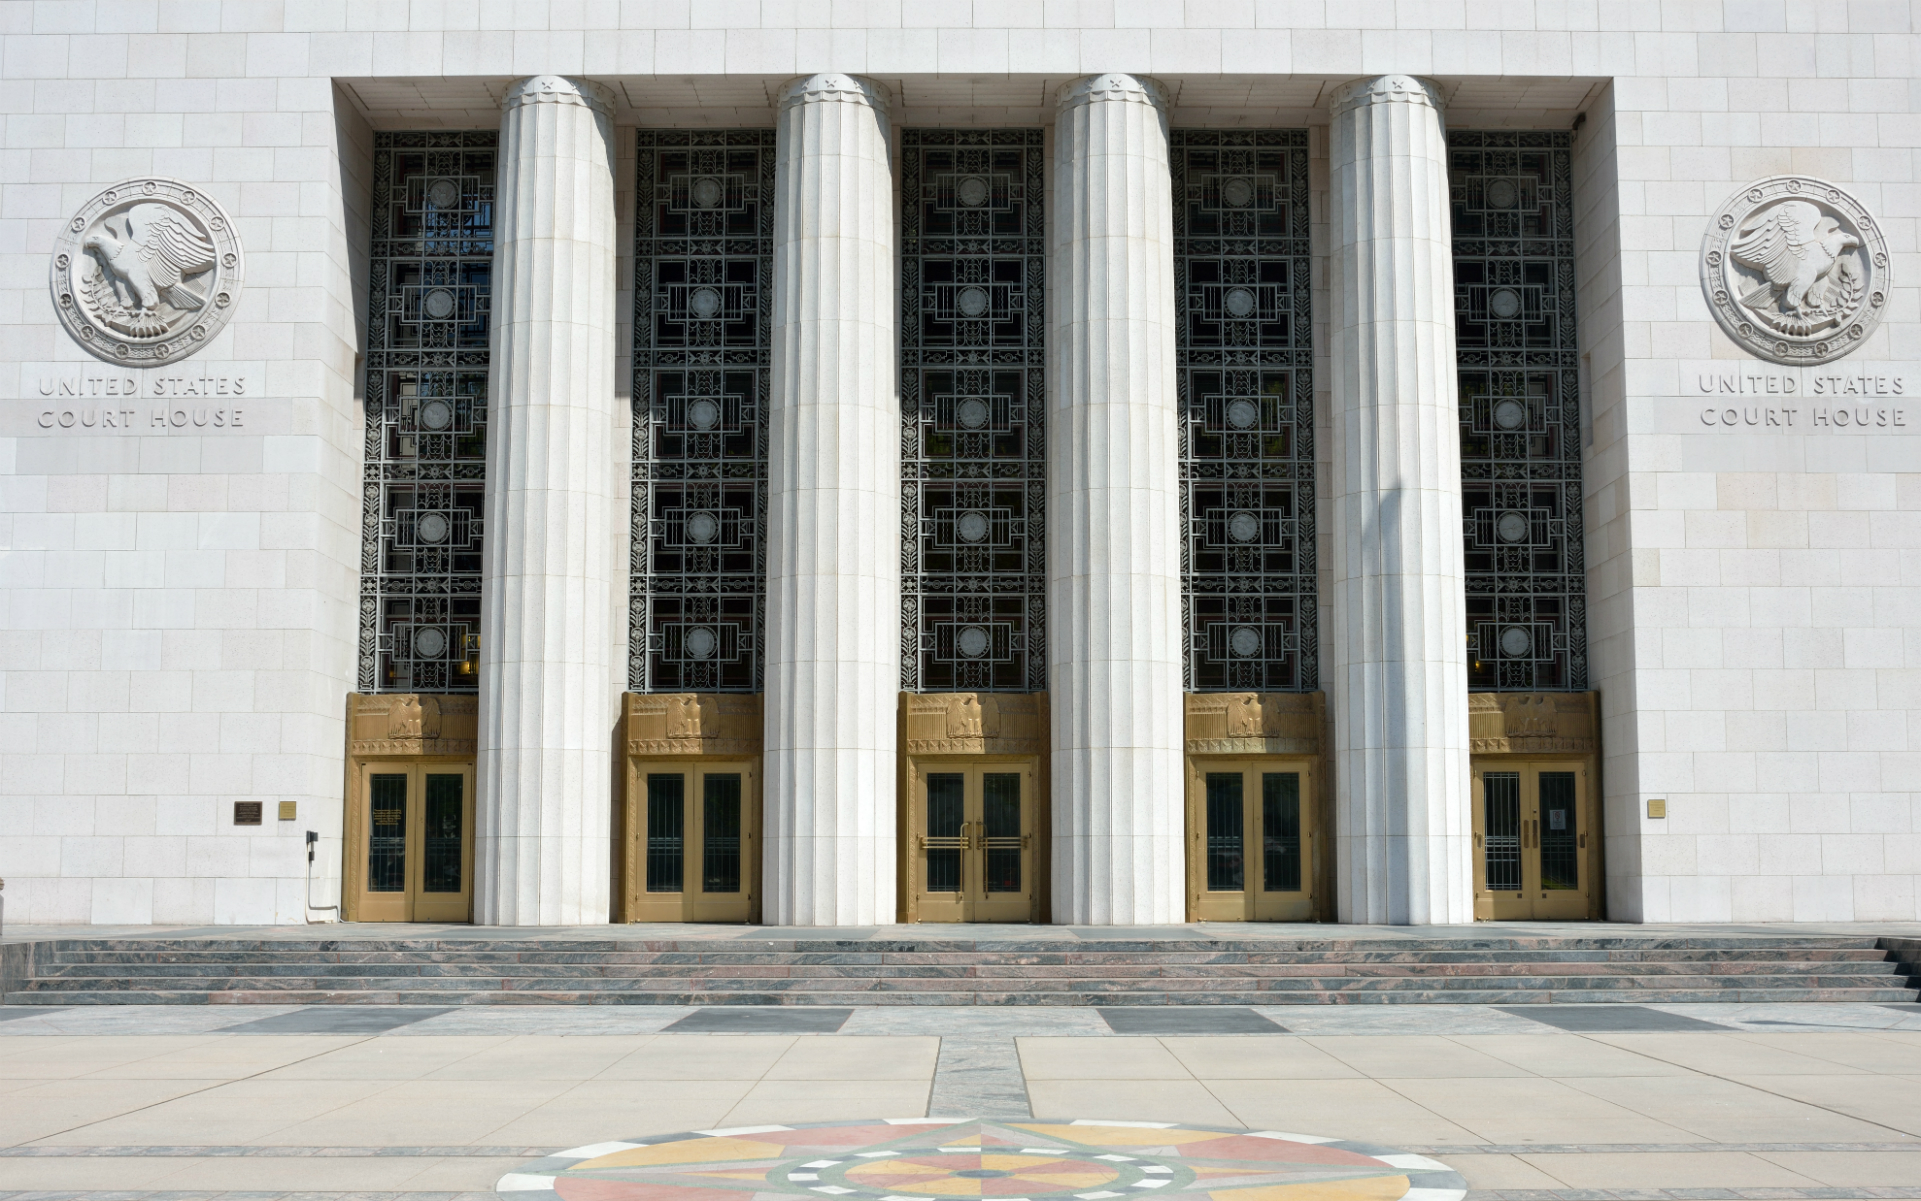 los angeles federal court